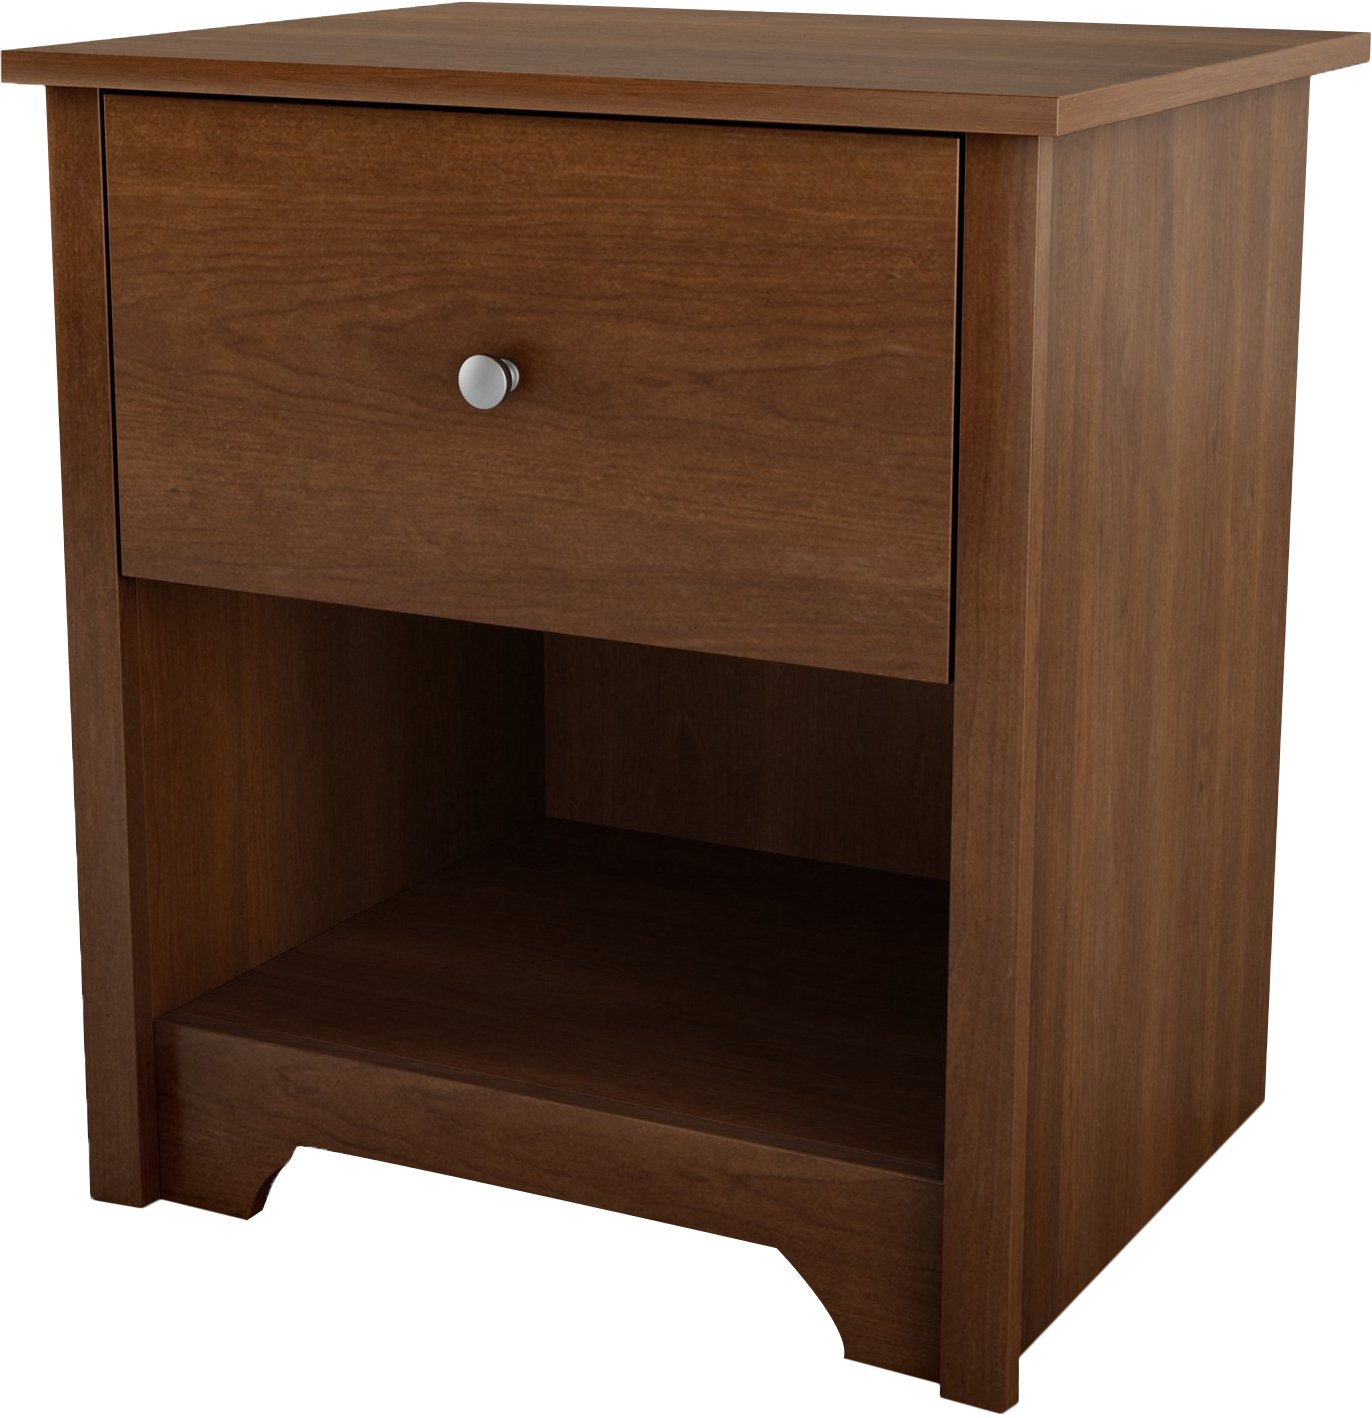 South Shore Furniture Vito Collection, Night Stand, Chocolate 3119062